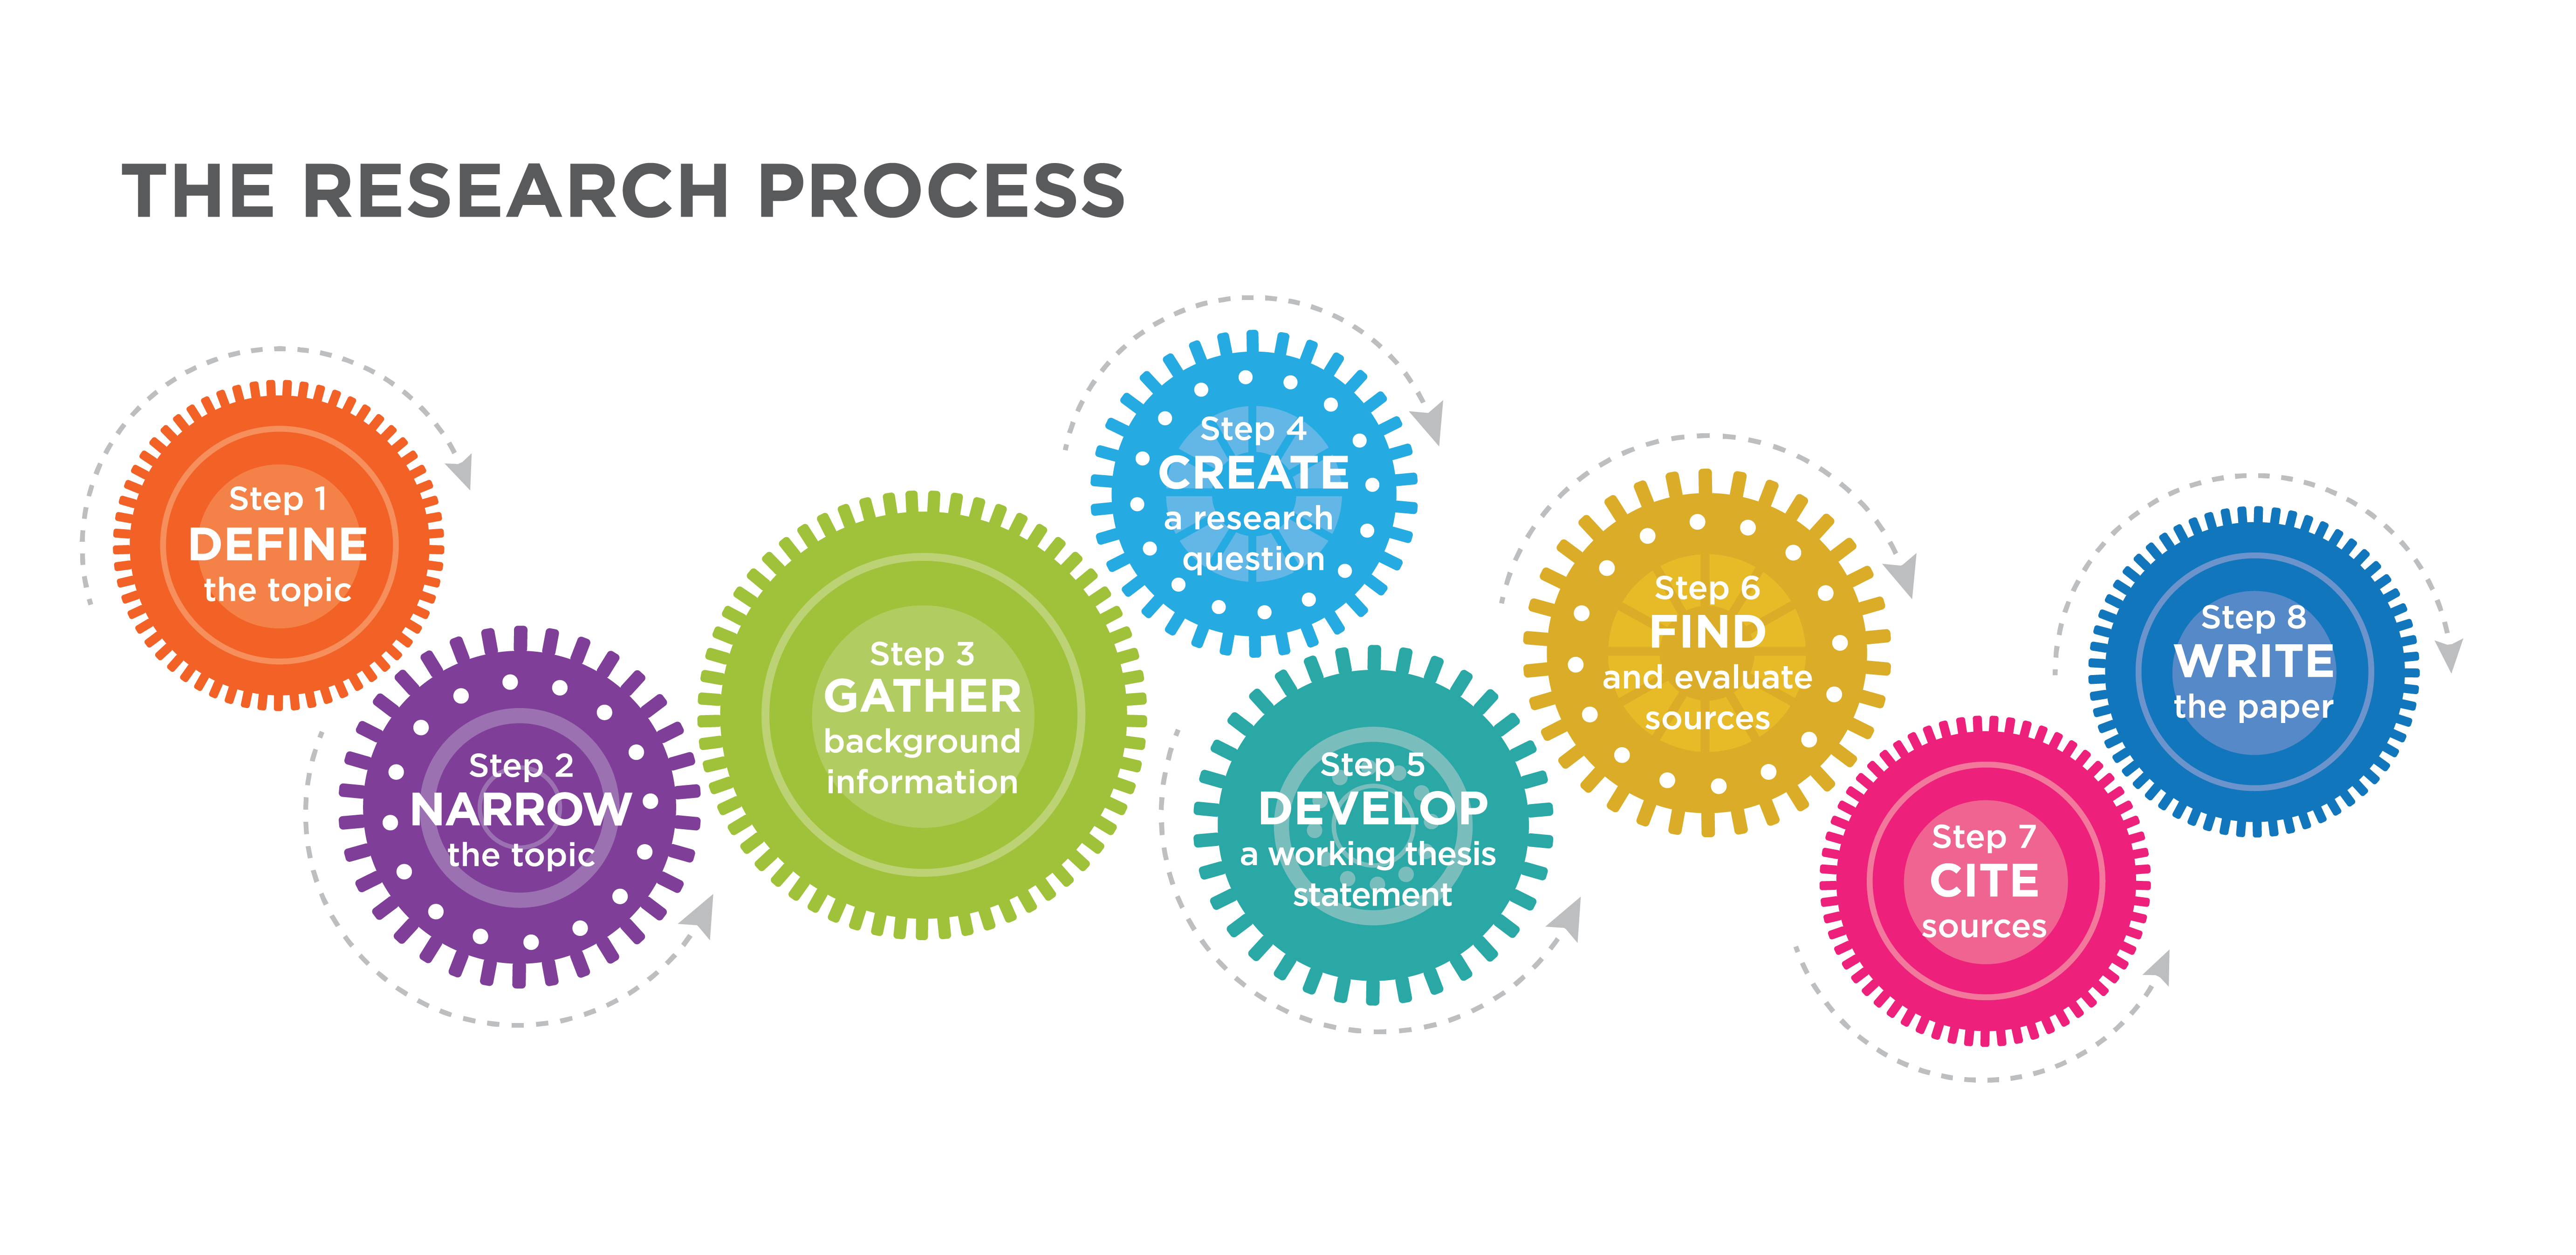 Gears showing the research process: define the topic, narrow the topic, gather background information, create a research question, develop a working thesis statement, find and evaluate sources, cite sources, and write the paper.